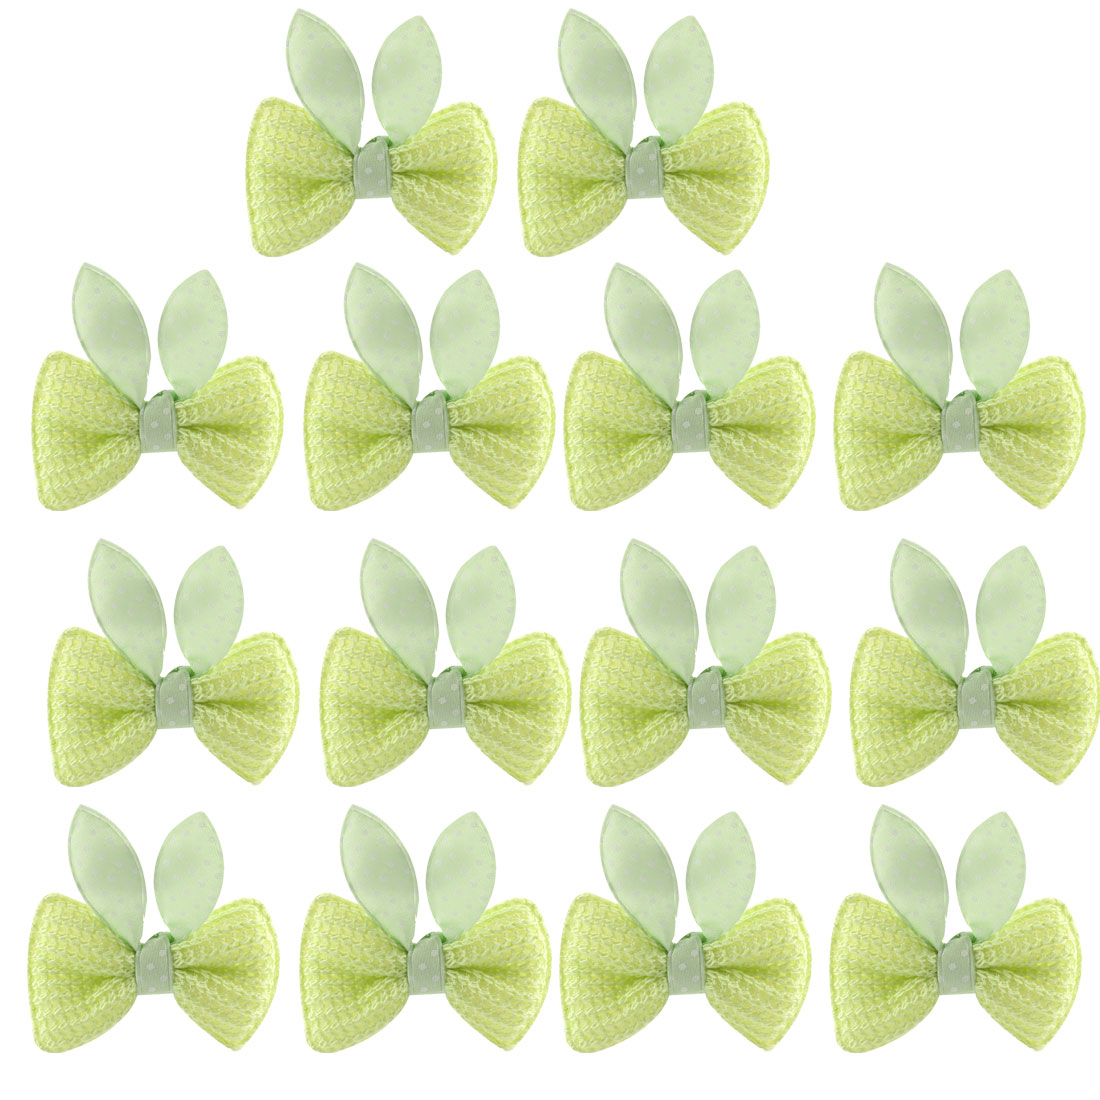 7 Pairs Girls Bowknot Hair Clip Alligator Hairpin Gift Light Green